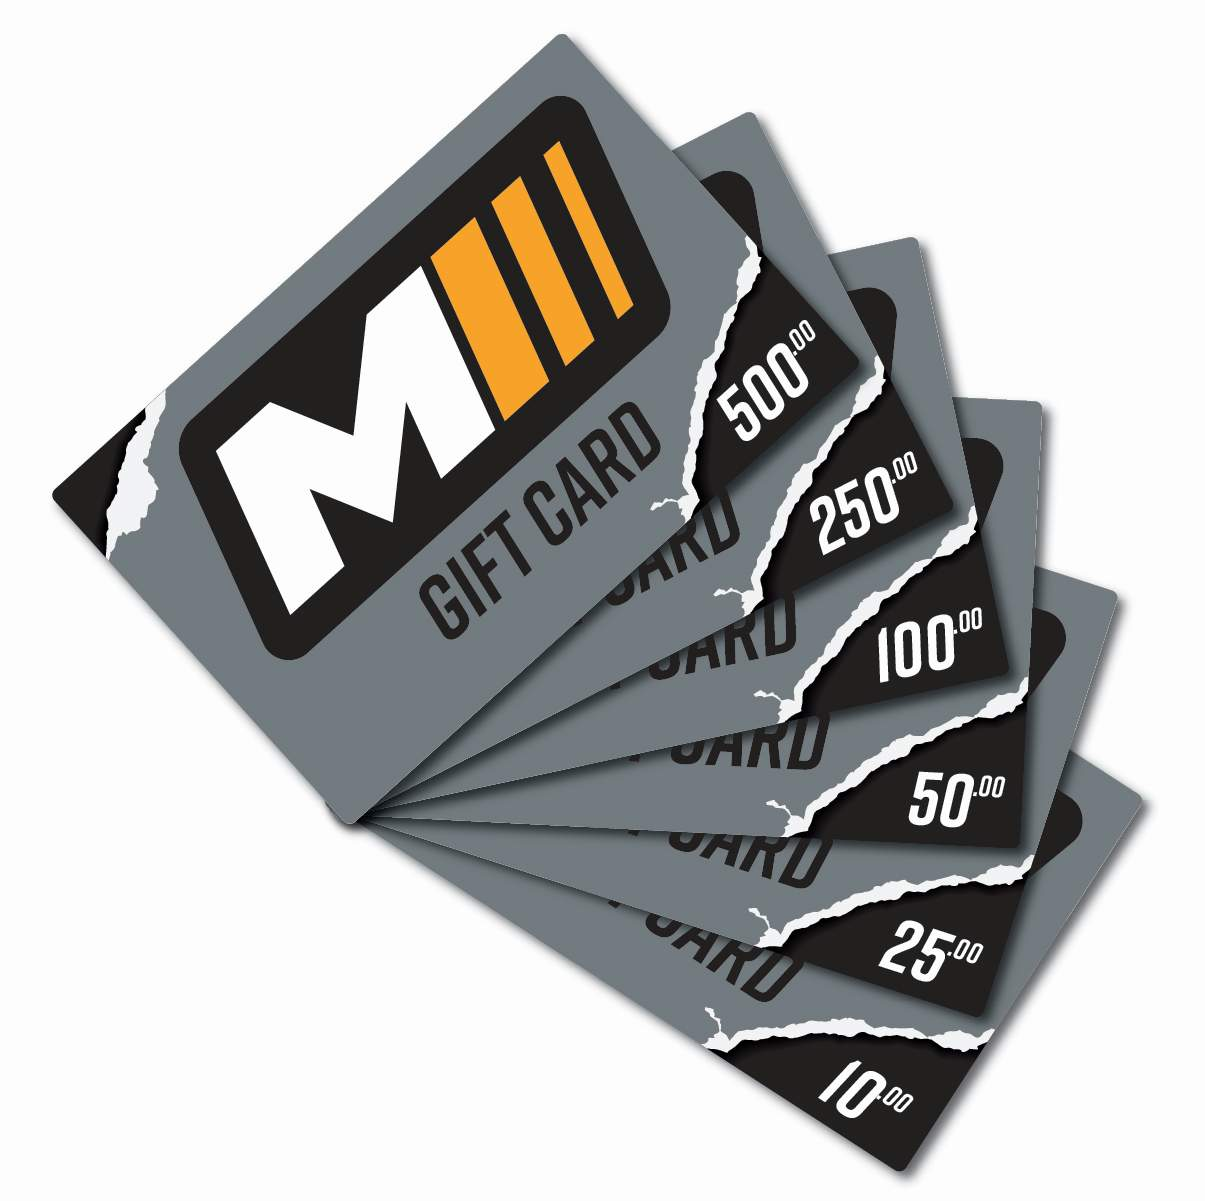 Motomentum Digital Gift Cards